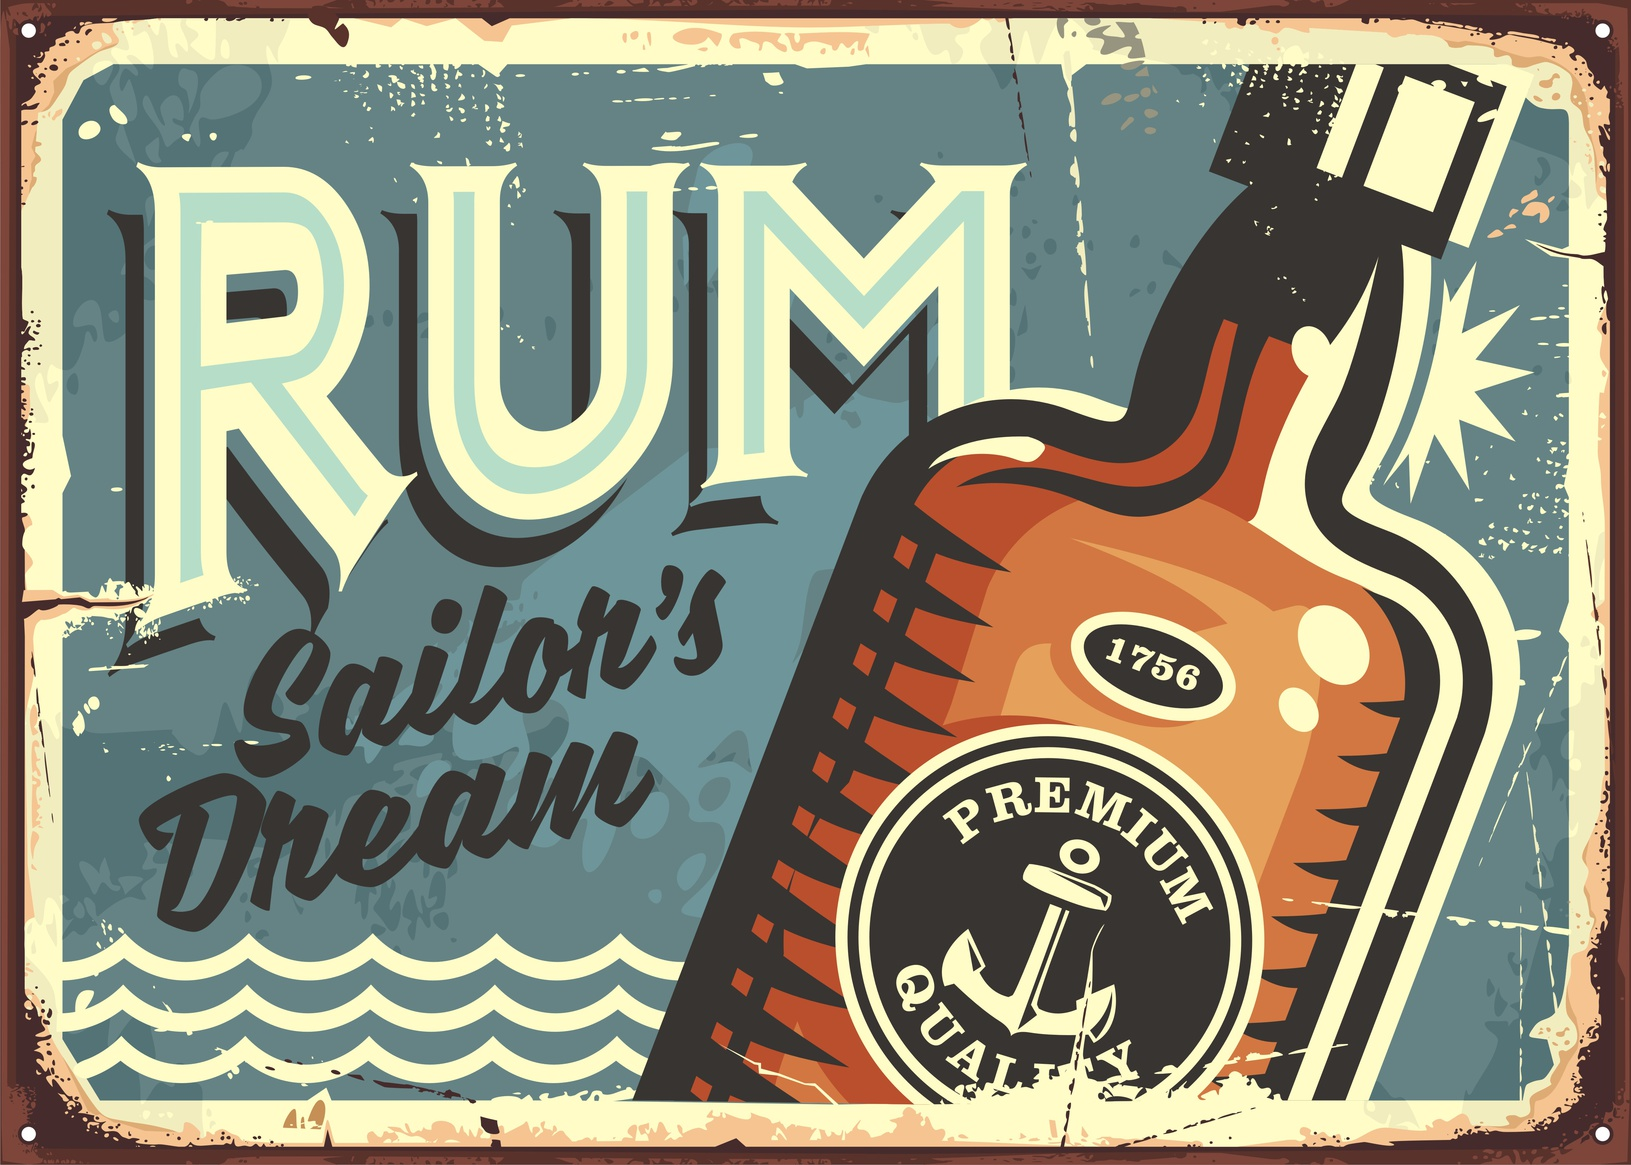 For quite some time that first Australian colony was known as the rum colony